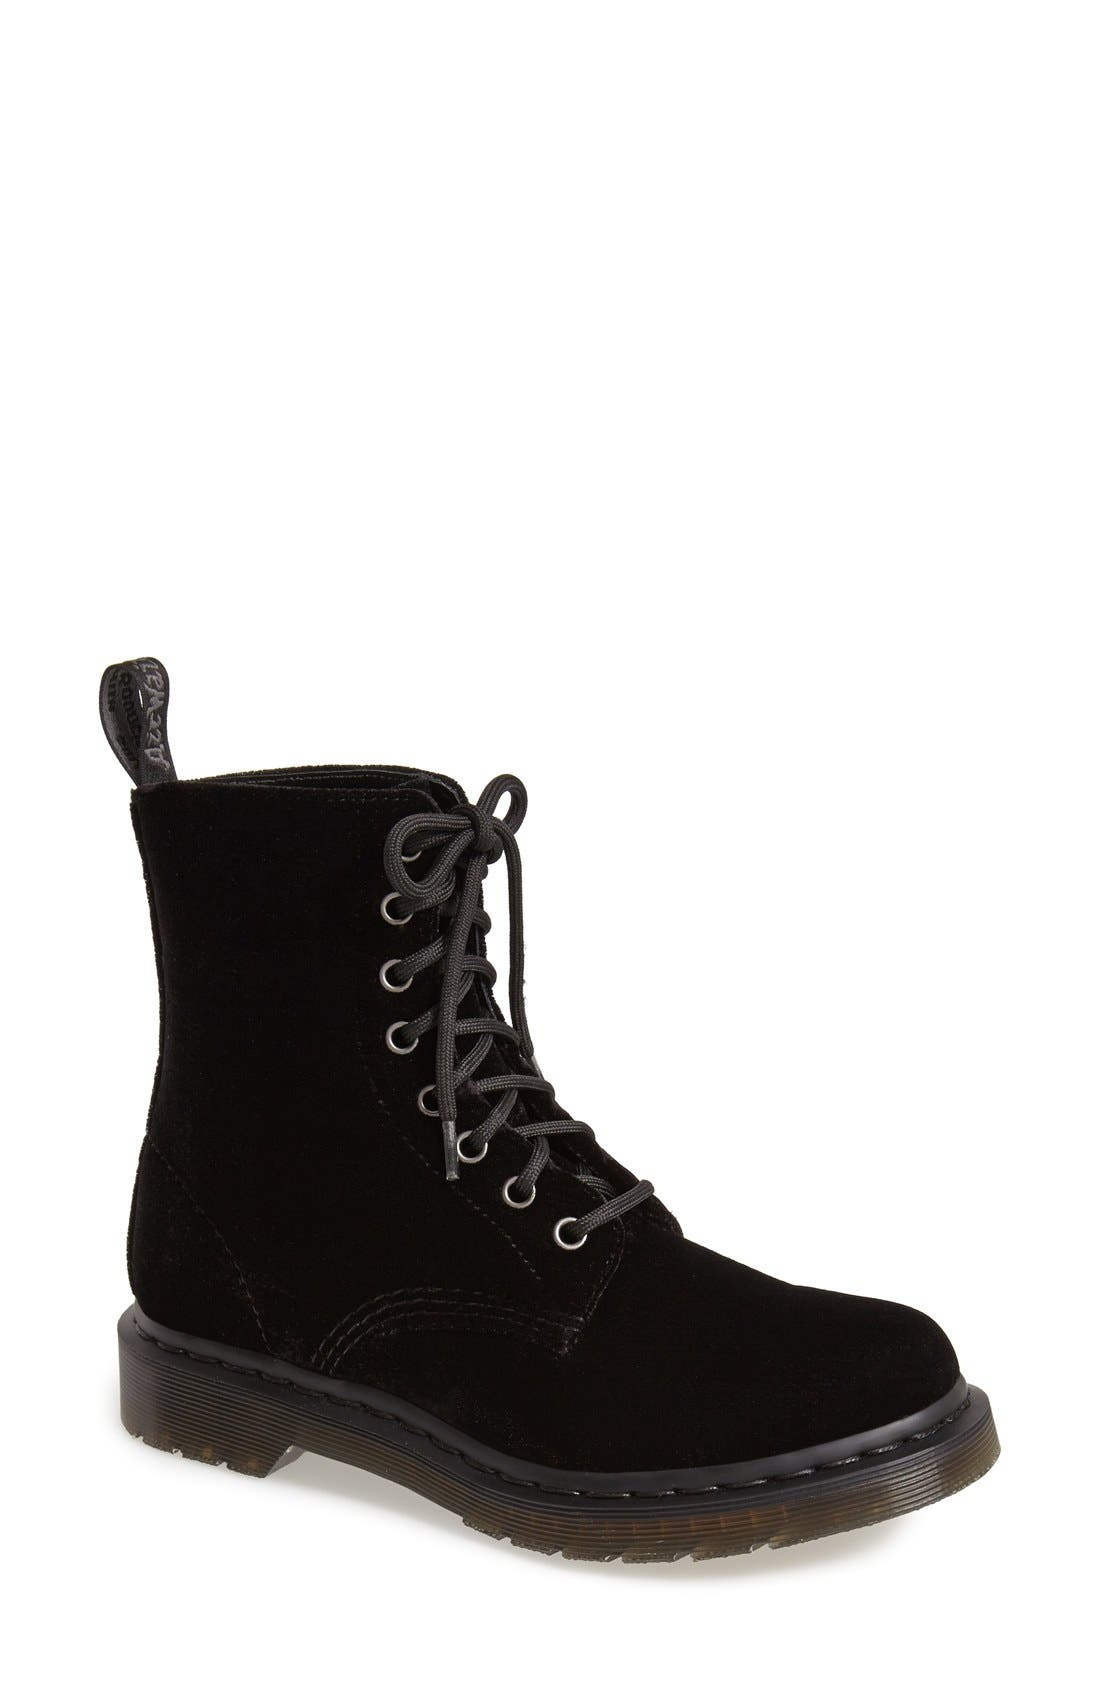 Main Image - Dr. Martens 'Page 8-Eye' Velvet Boot (Women)